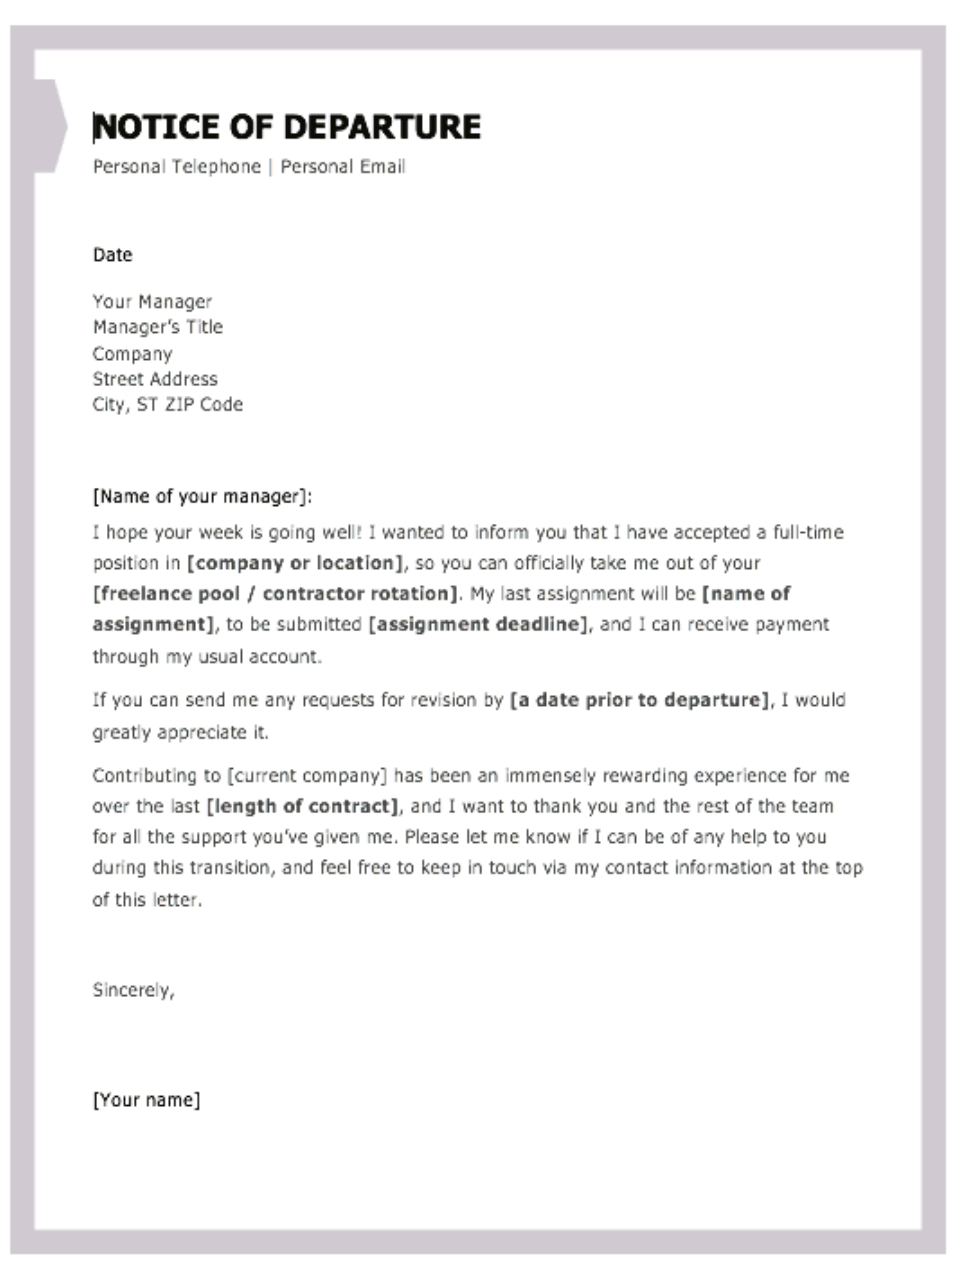 Writing A Letter Of Resignation Uk Examples. Feels free to